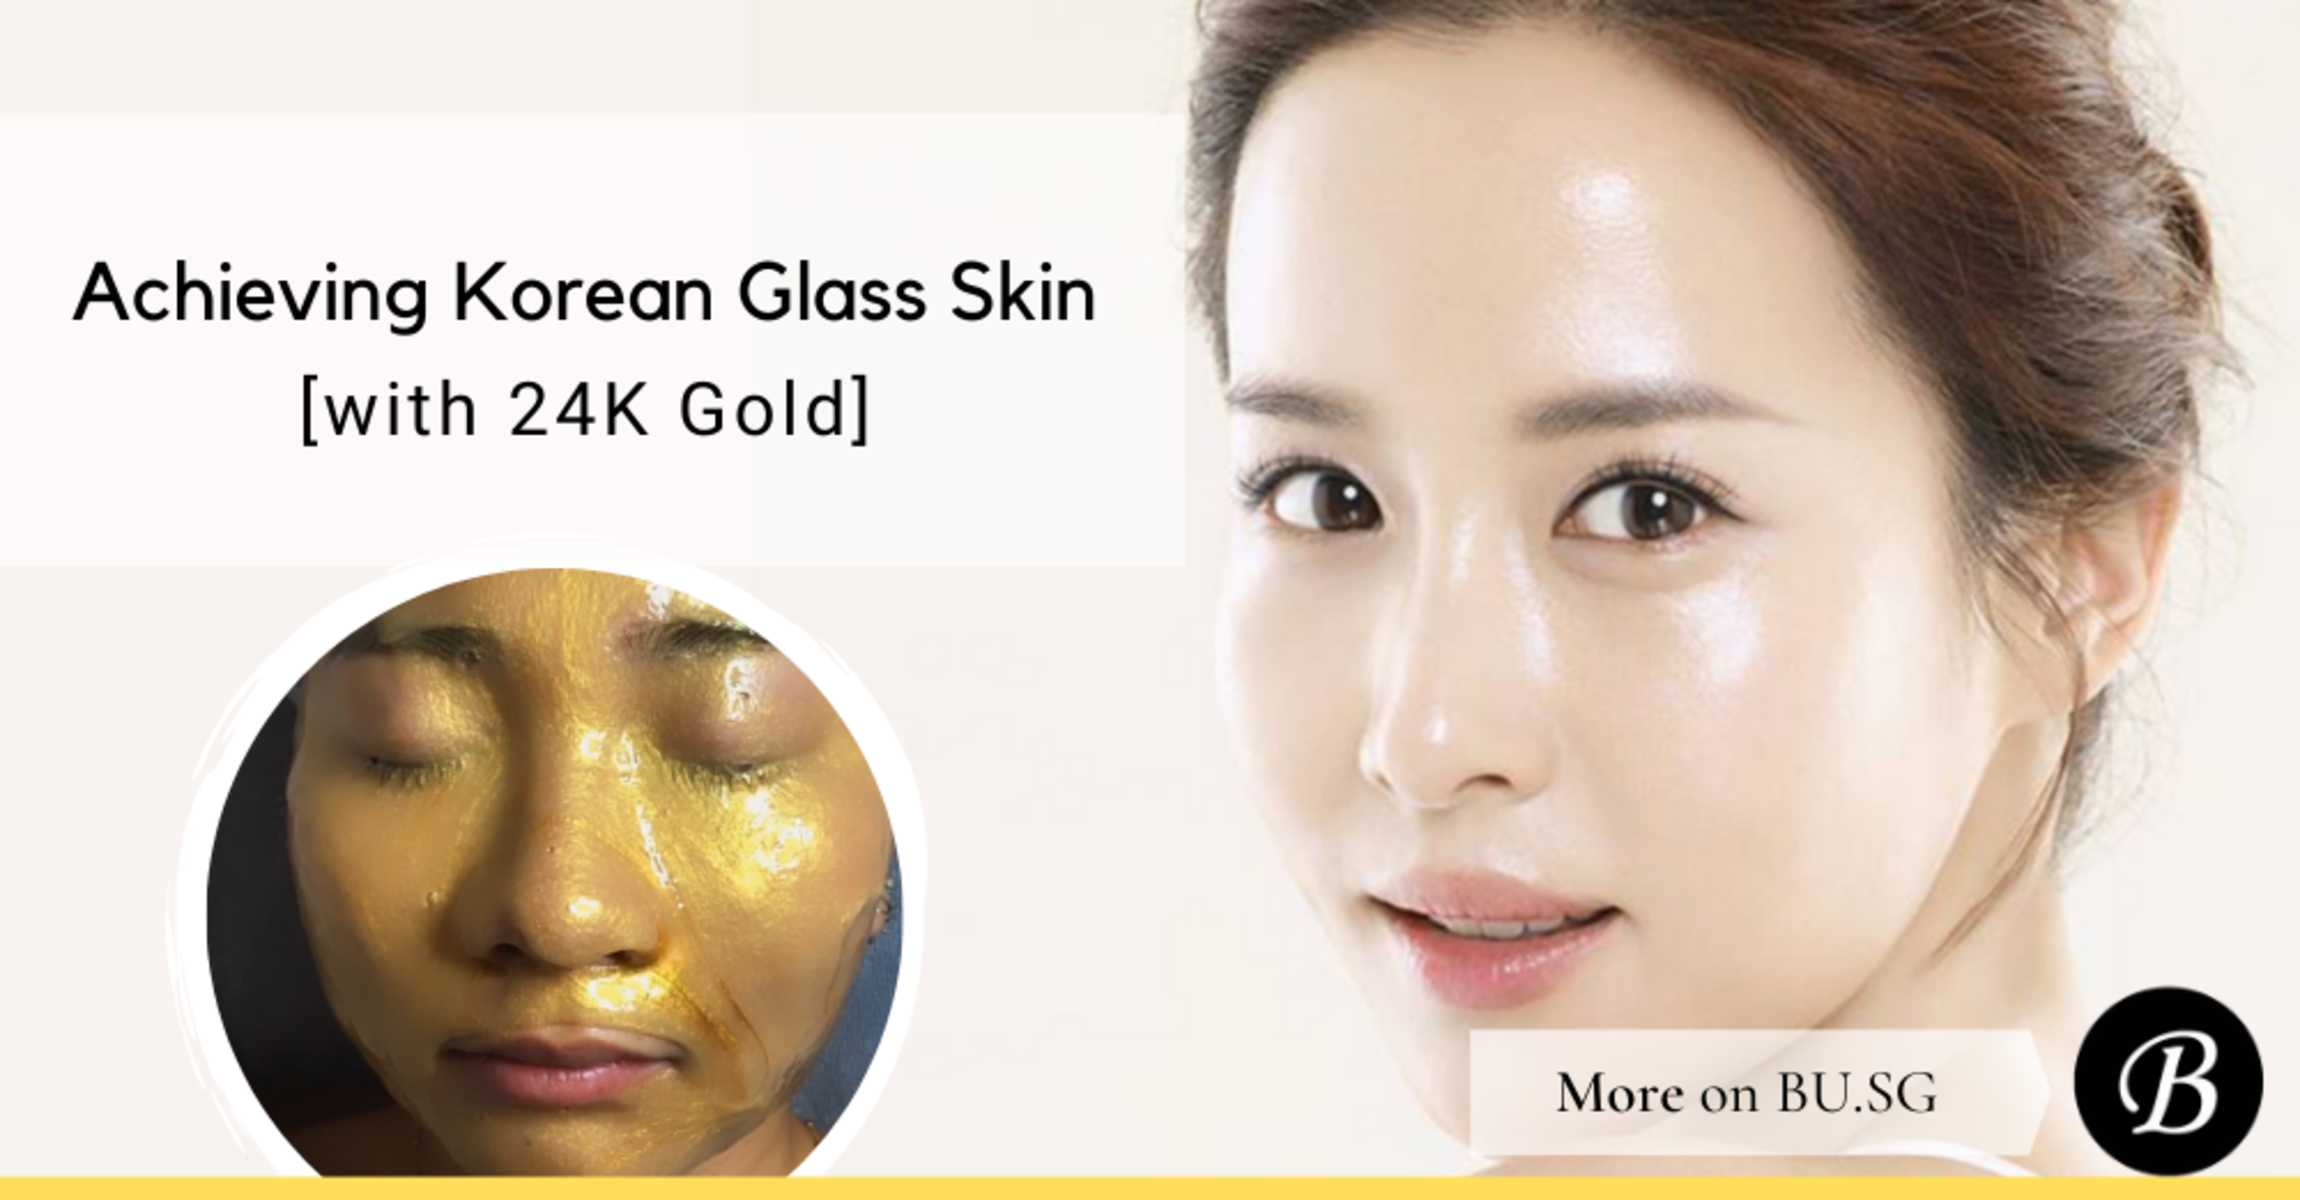 What is the 24K Gold Facial and How It Gets You Closer to Korean Glass Skin